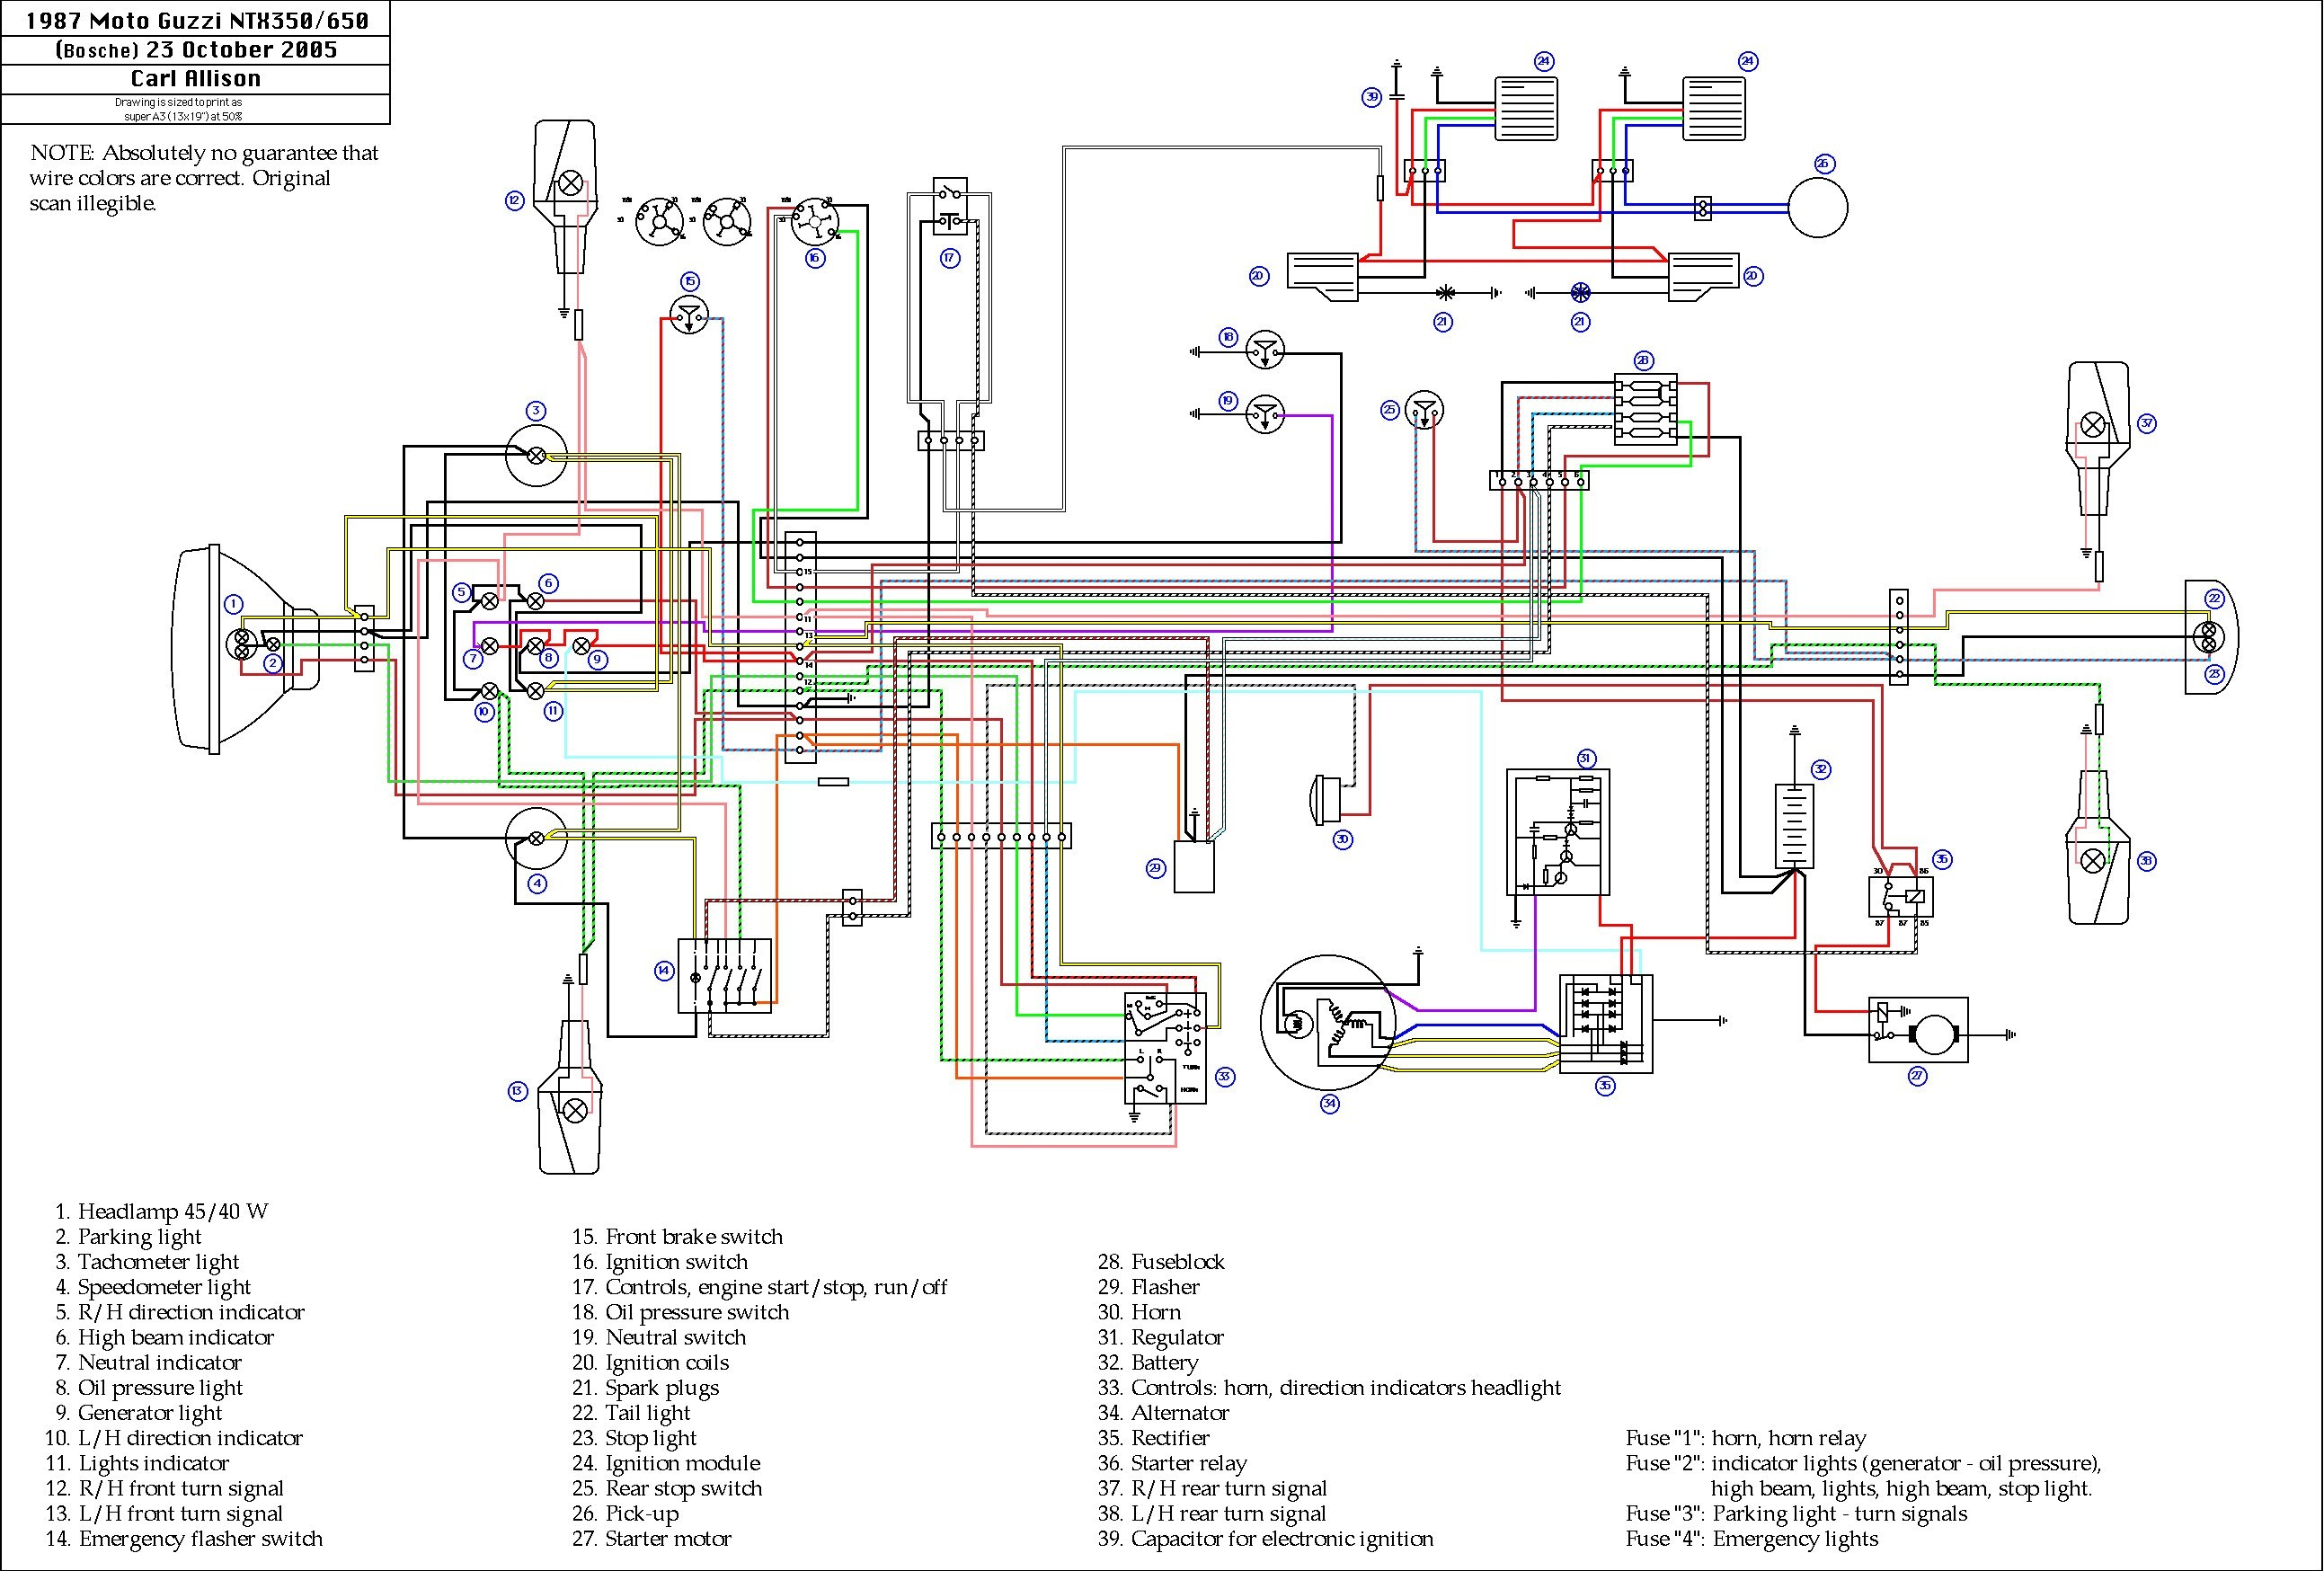 Lincoln Cv 250 Wiring Diagram Pdf from mainetreasurechest.com